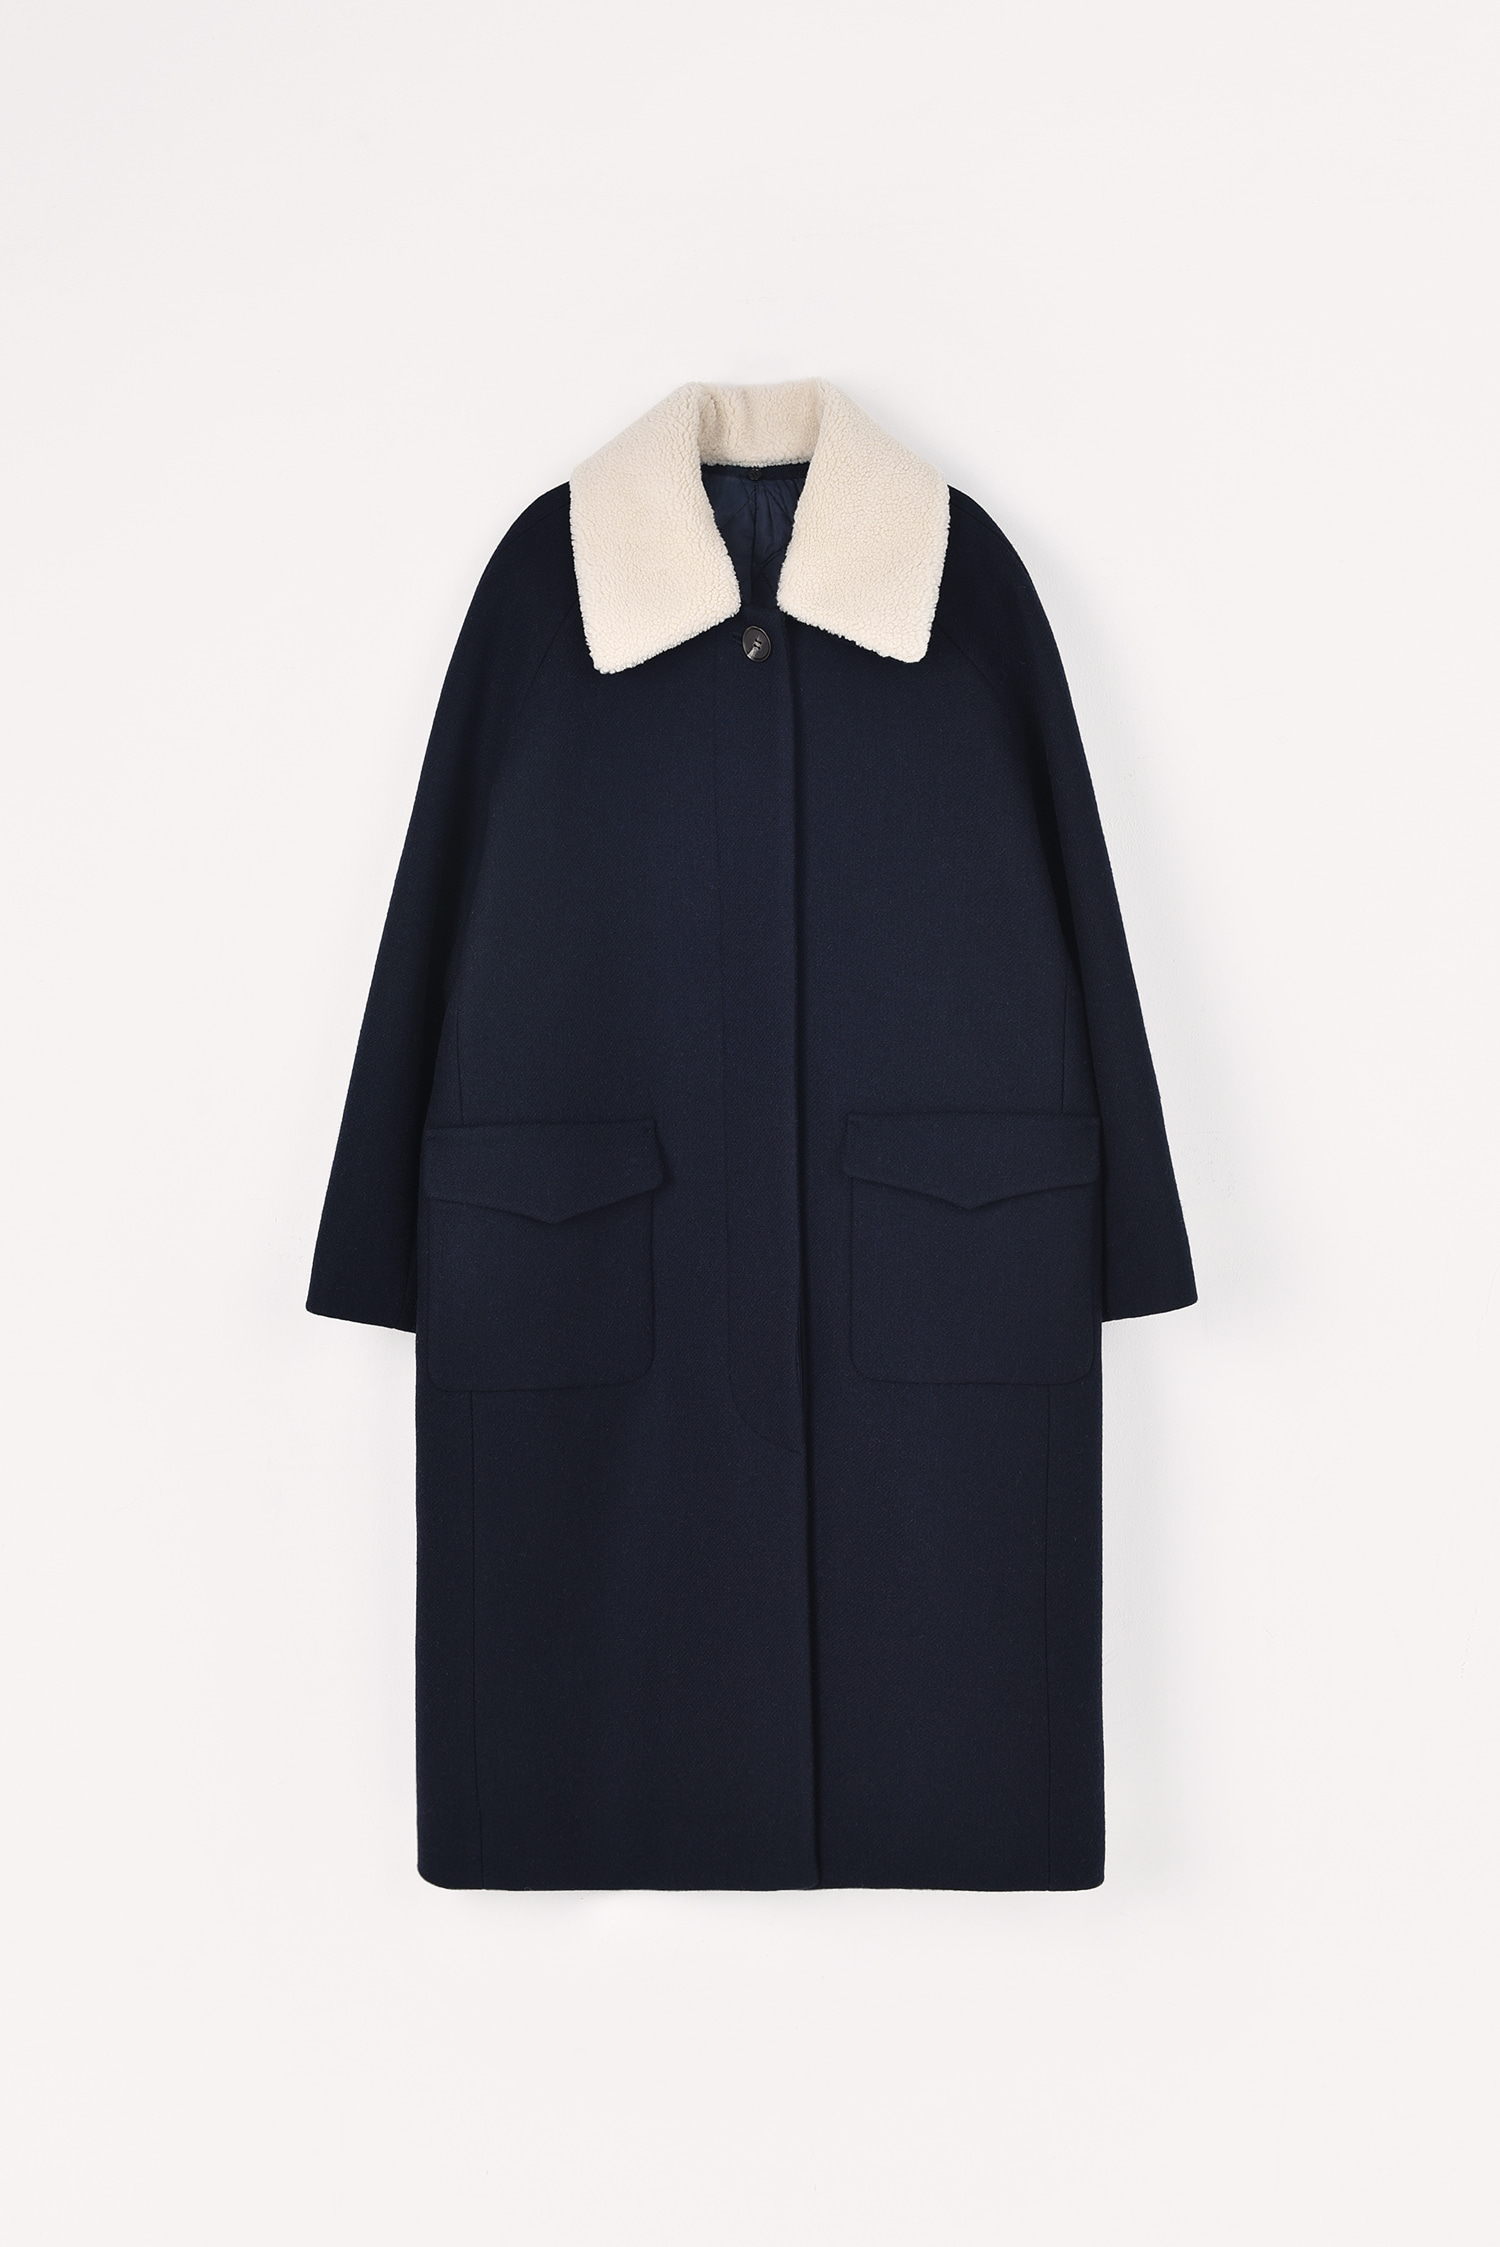 4 RE-ORDER / Thinsulate padded wool coat (Long / Dark navy)